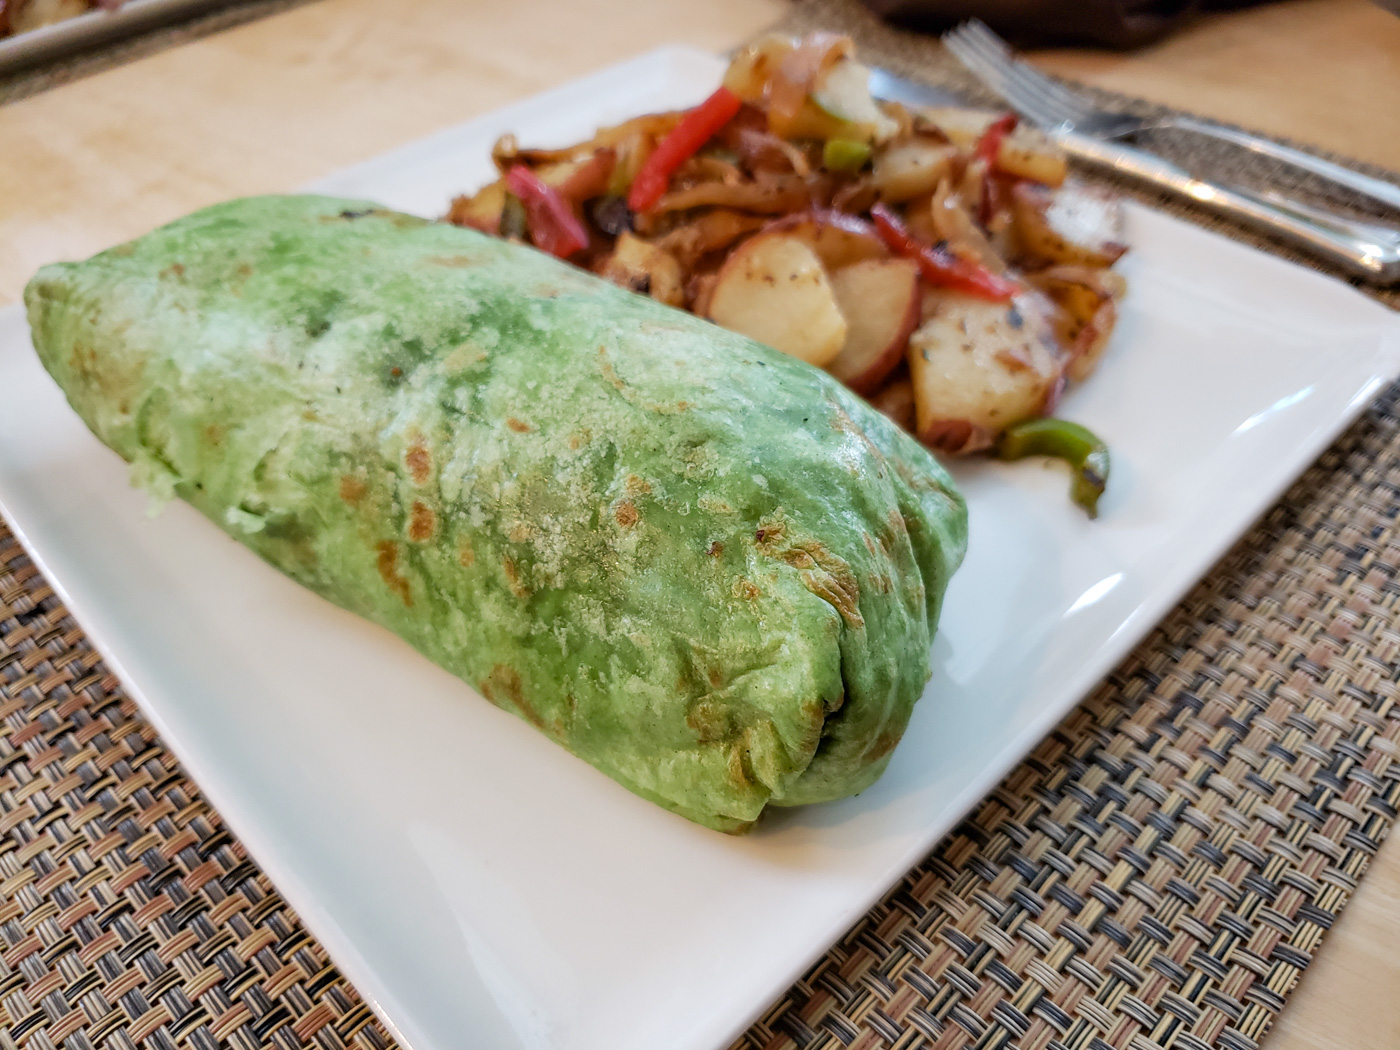 Vegan Burrito from The Gold Standard Cafe